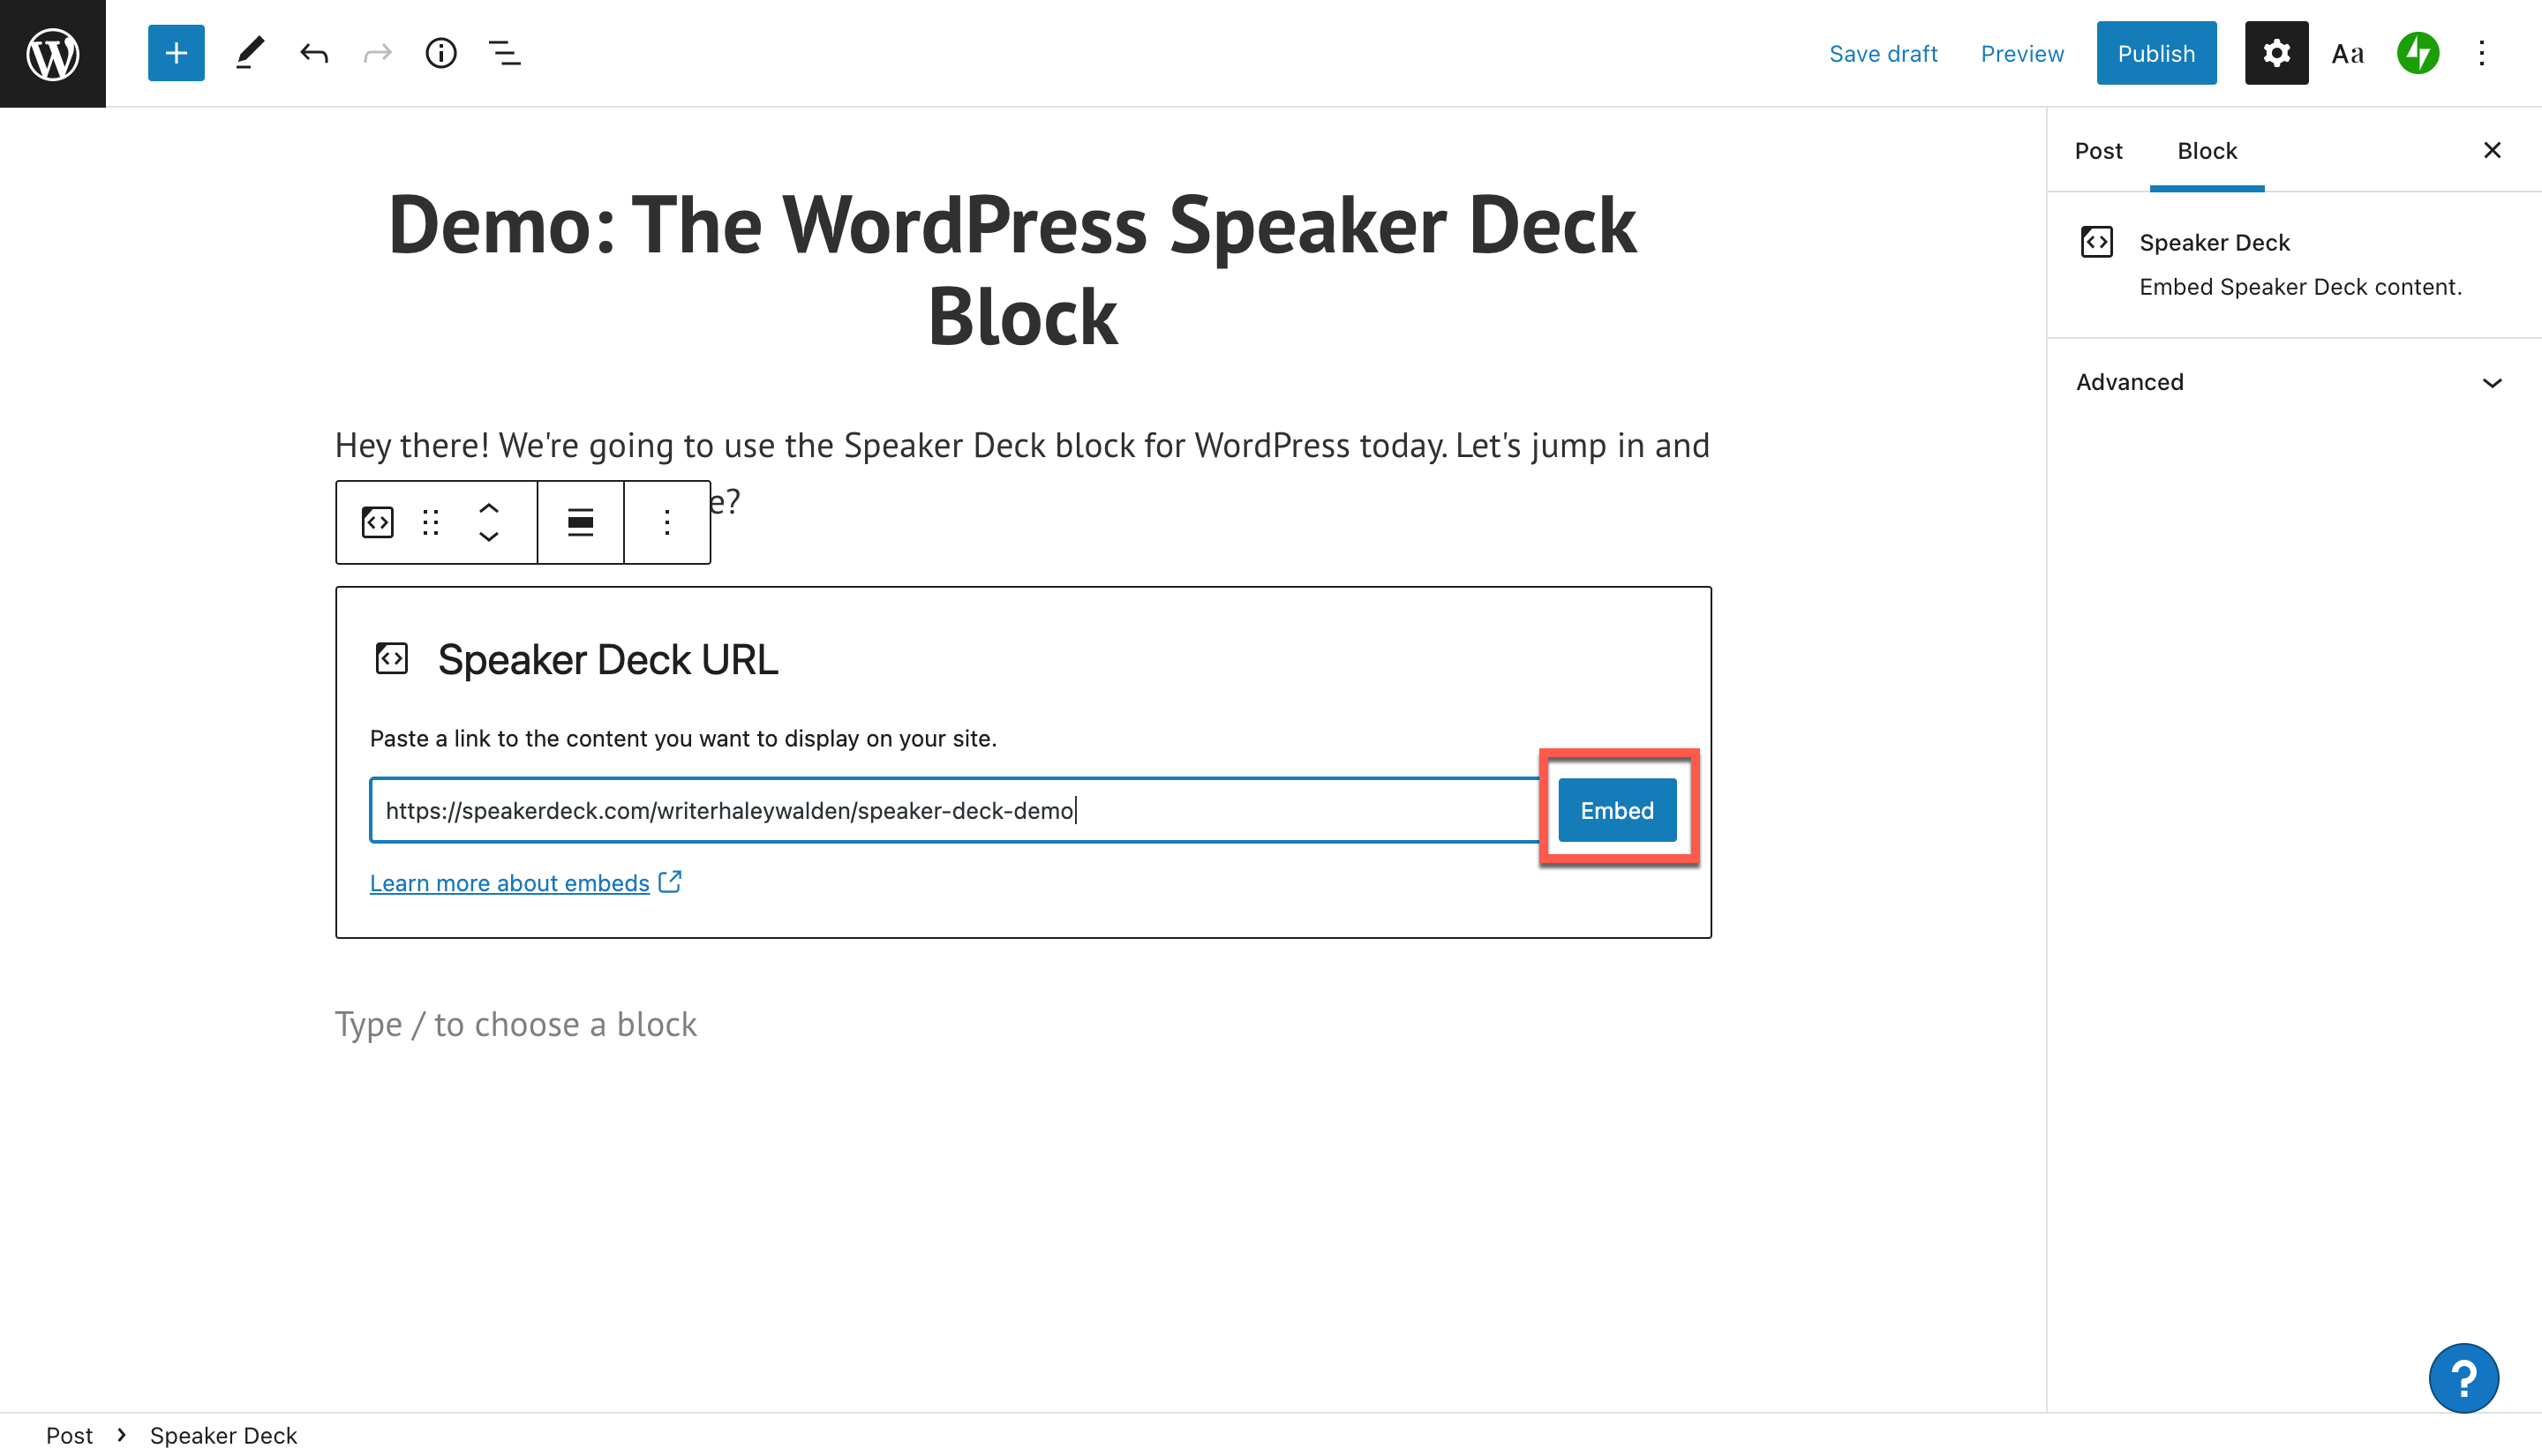 how-to-use-the-wordpress-speaker-deck-embed-block-6 如何使用 WordPress Speaker Deck 嵌入块